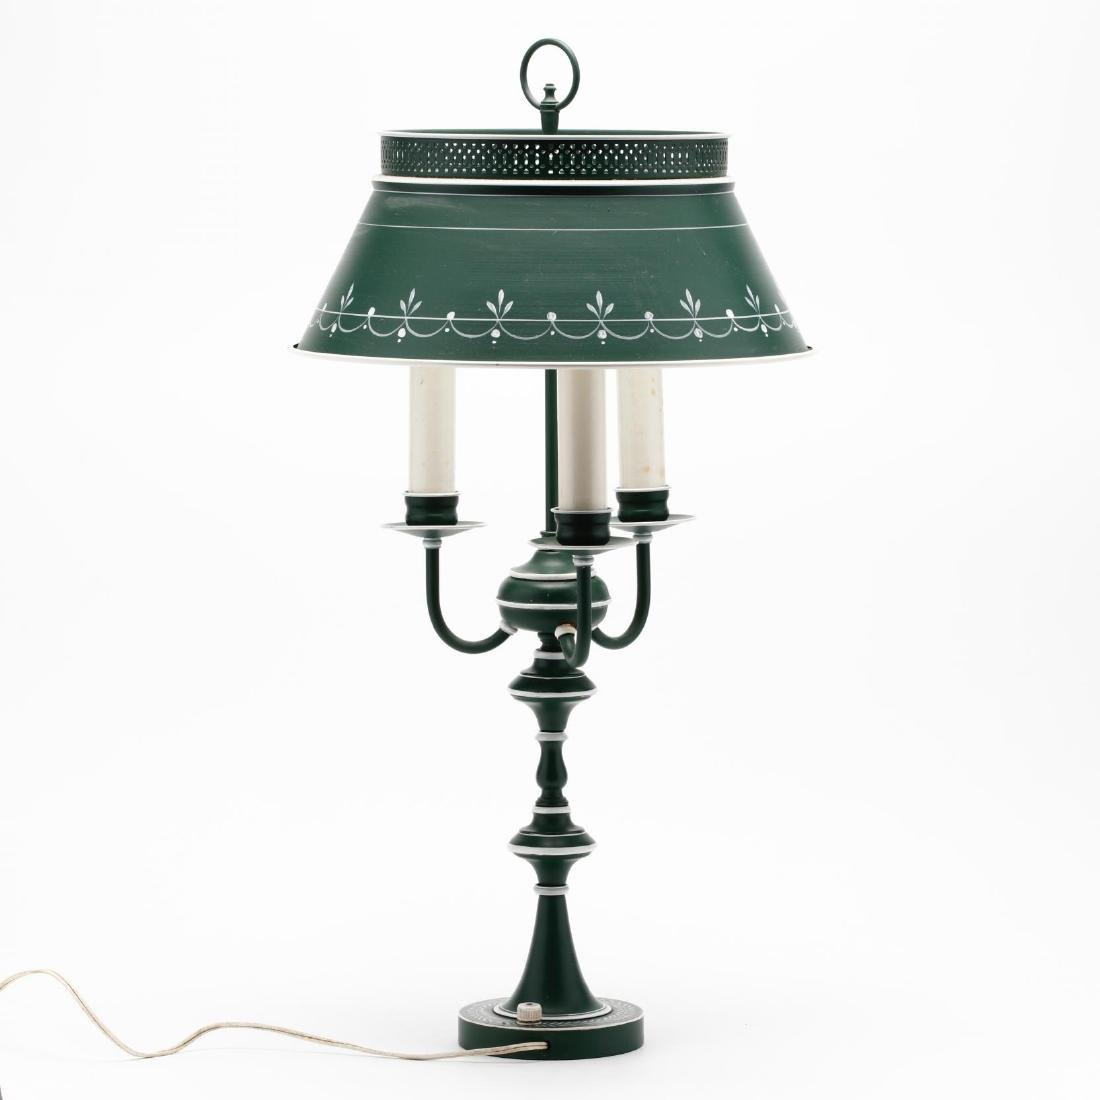 Vintage Tole Ware Table Lamp - 2